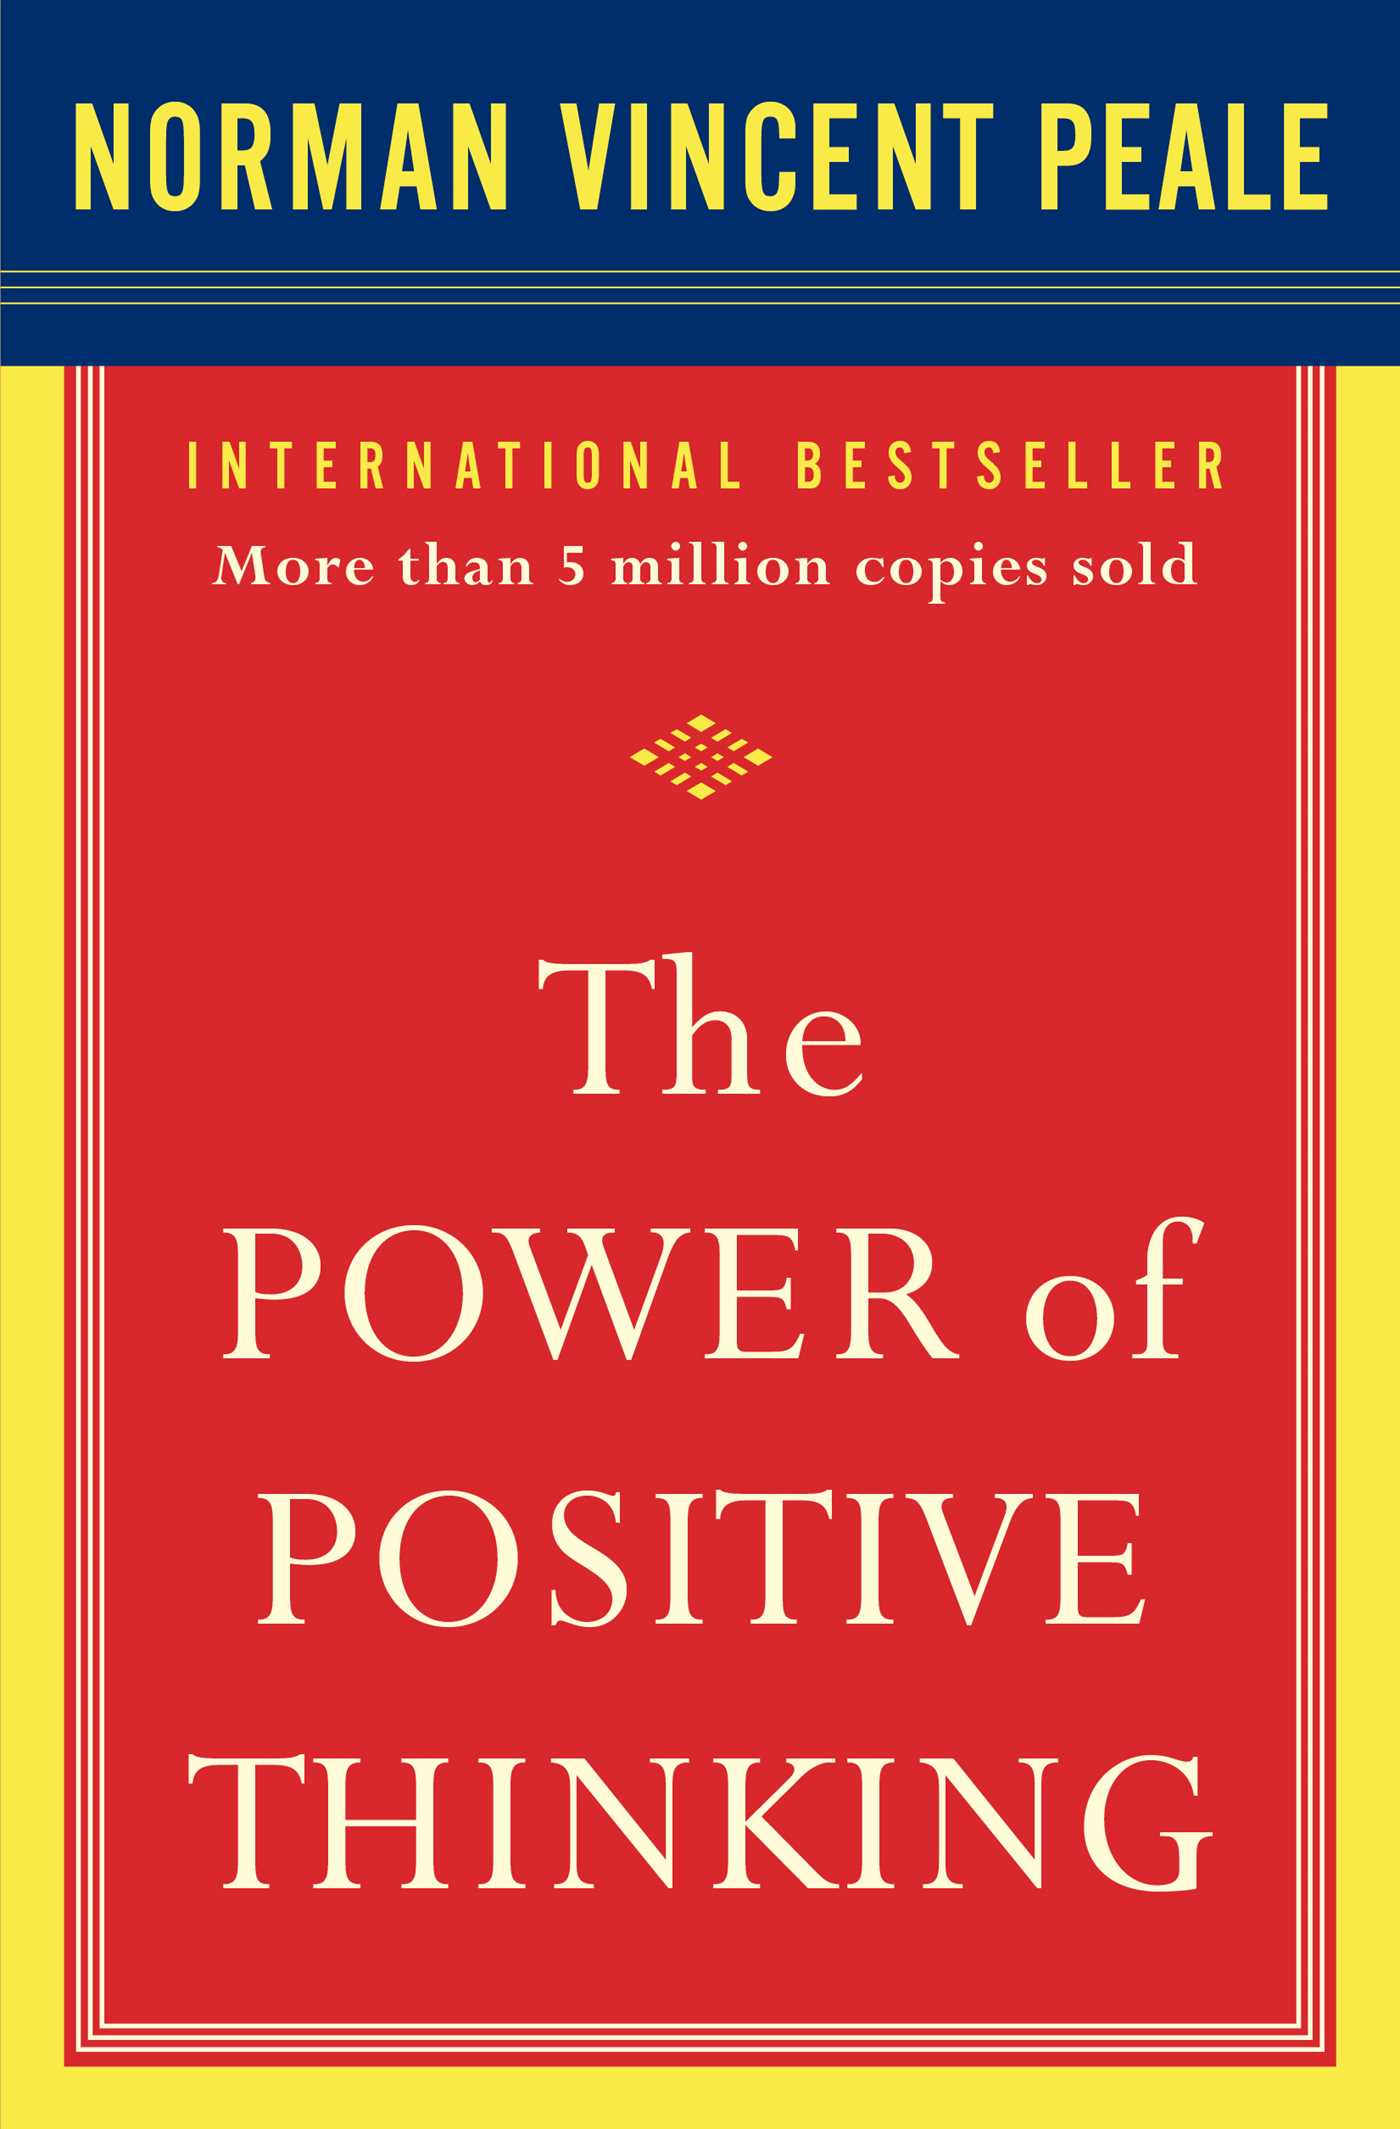 the power of positive thinking book by dr norman vincent peale  power of positive thinking 9780743234801 hr